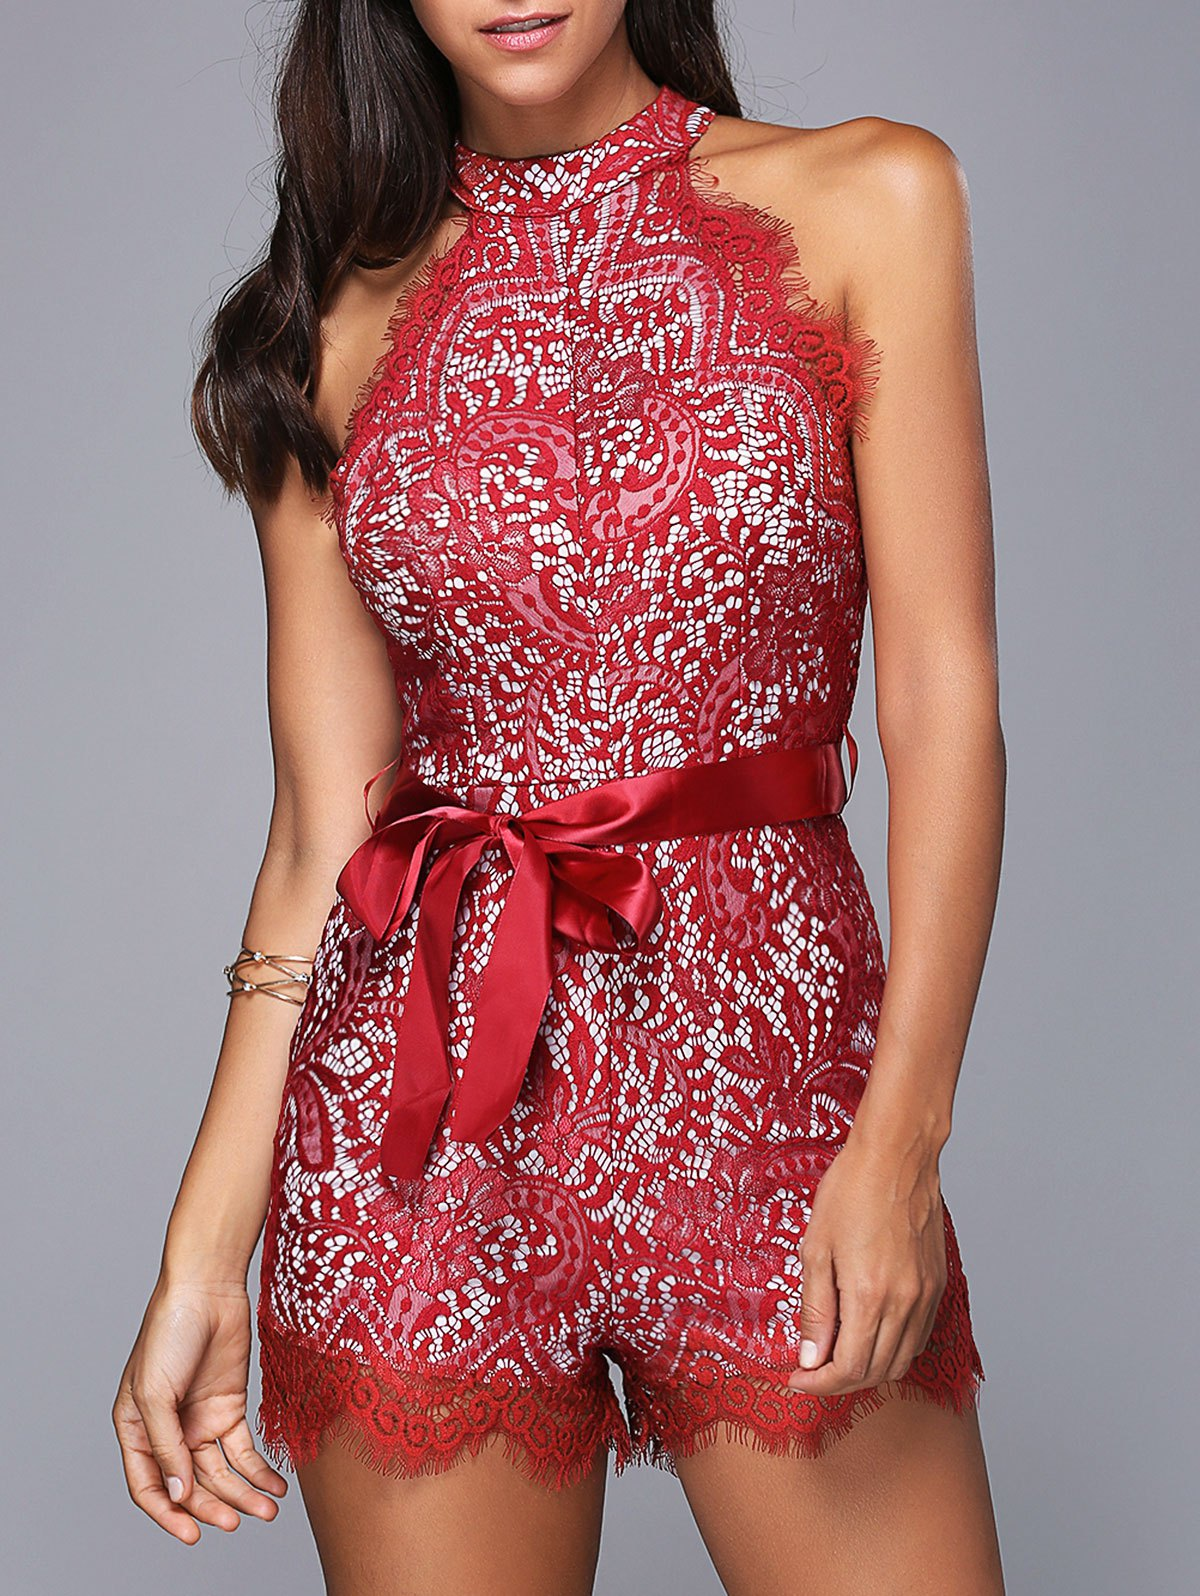 Stylish Round Neck Sleeveless Laced Belted Romper For Women - RED S